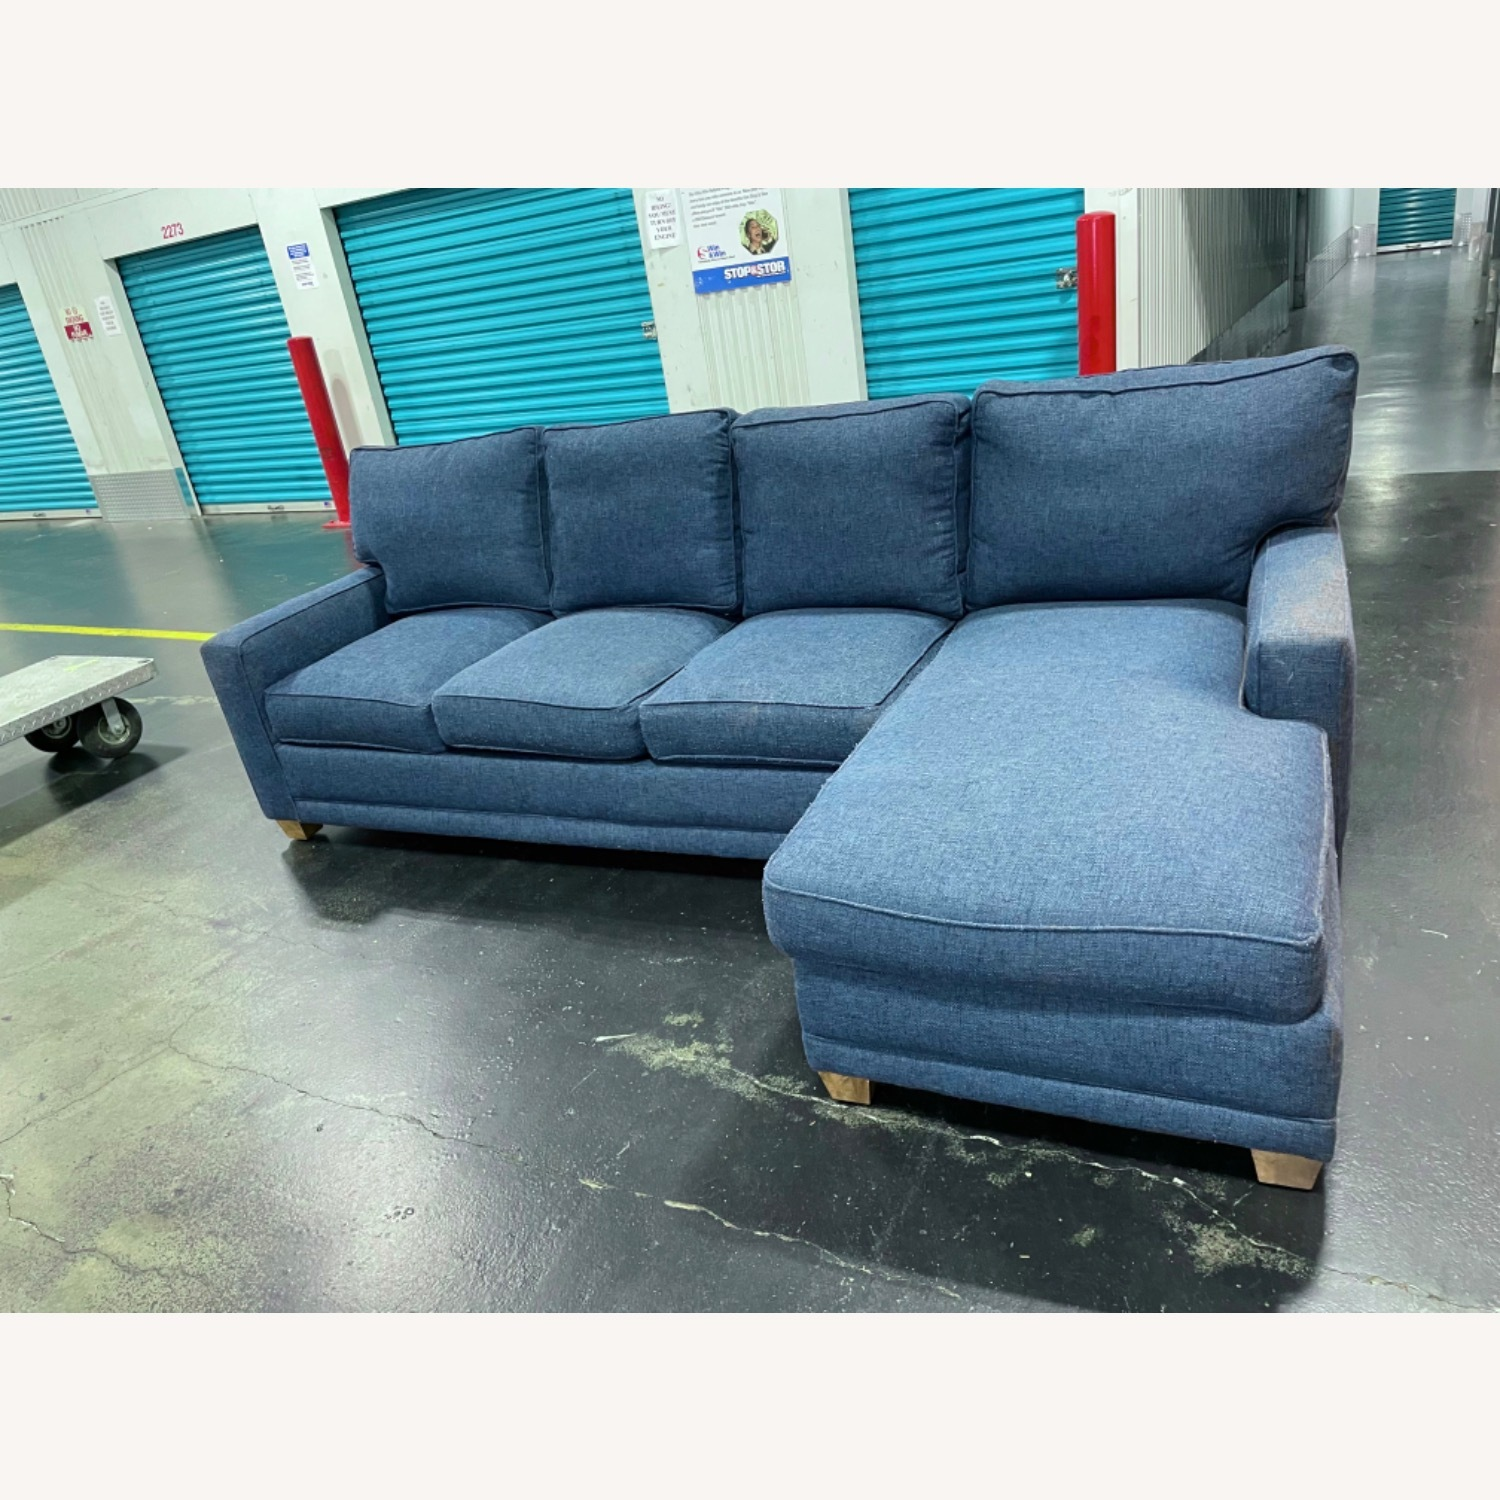 Rowe My Style 2 Piece Sectional - image-11